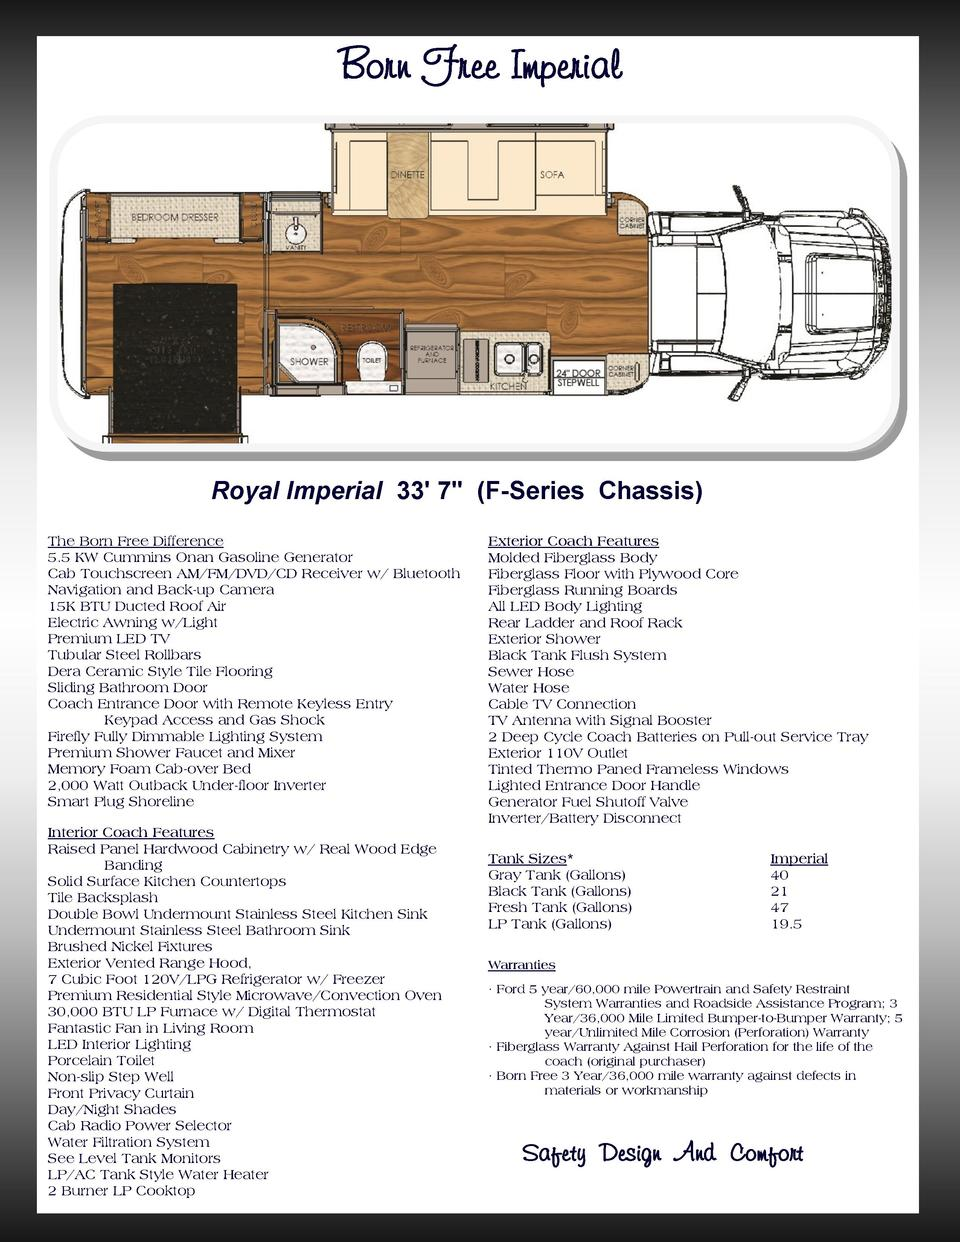 2016 Born Free Rvs 40 Rv Inverter Wiring Diagram Picture Imperial Royal 33 7 F Series Chassis The Difference 55